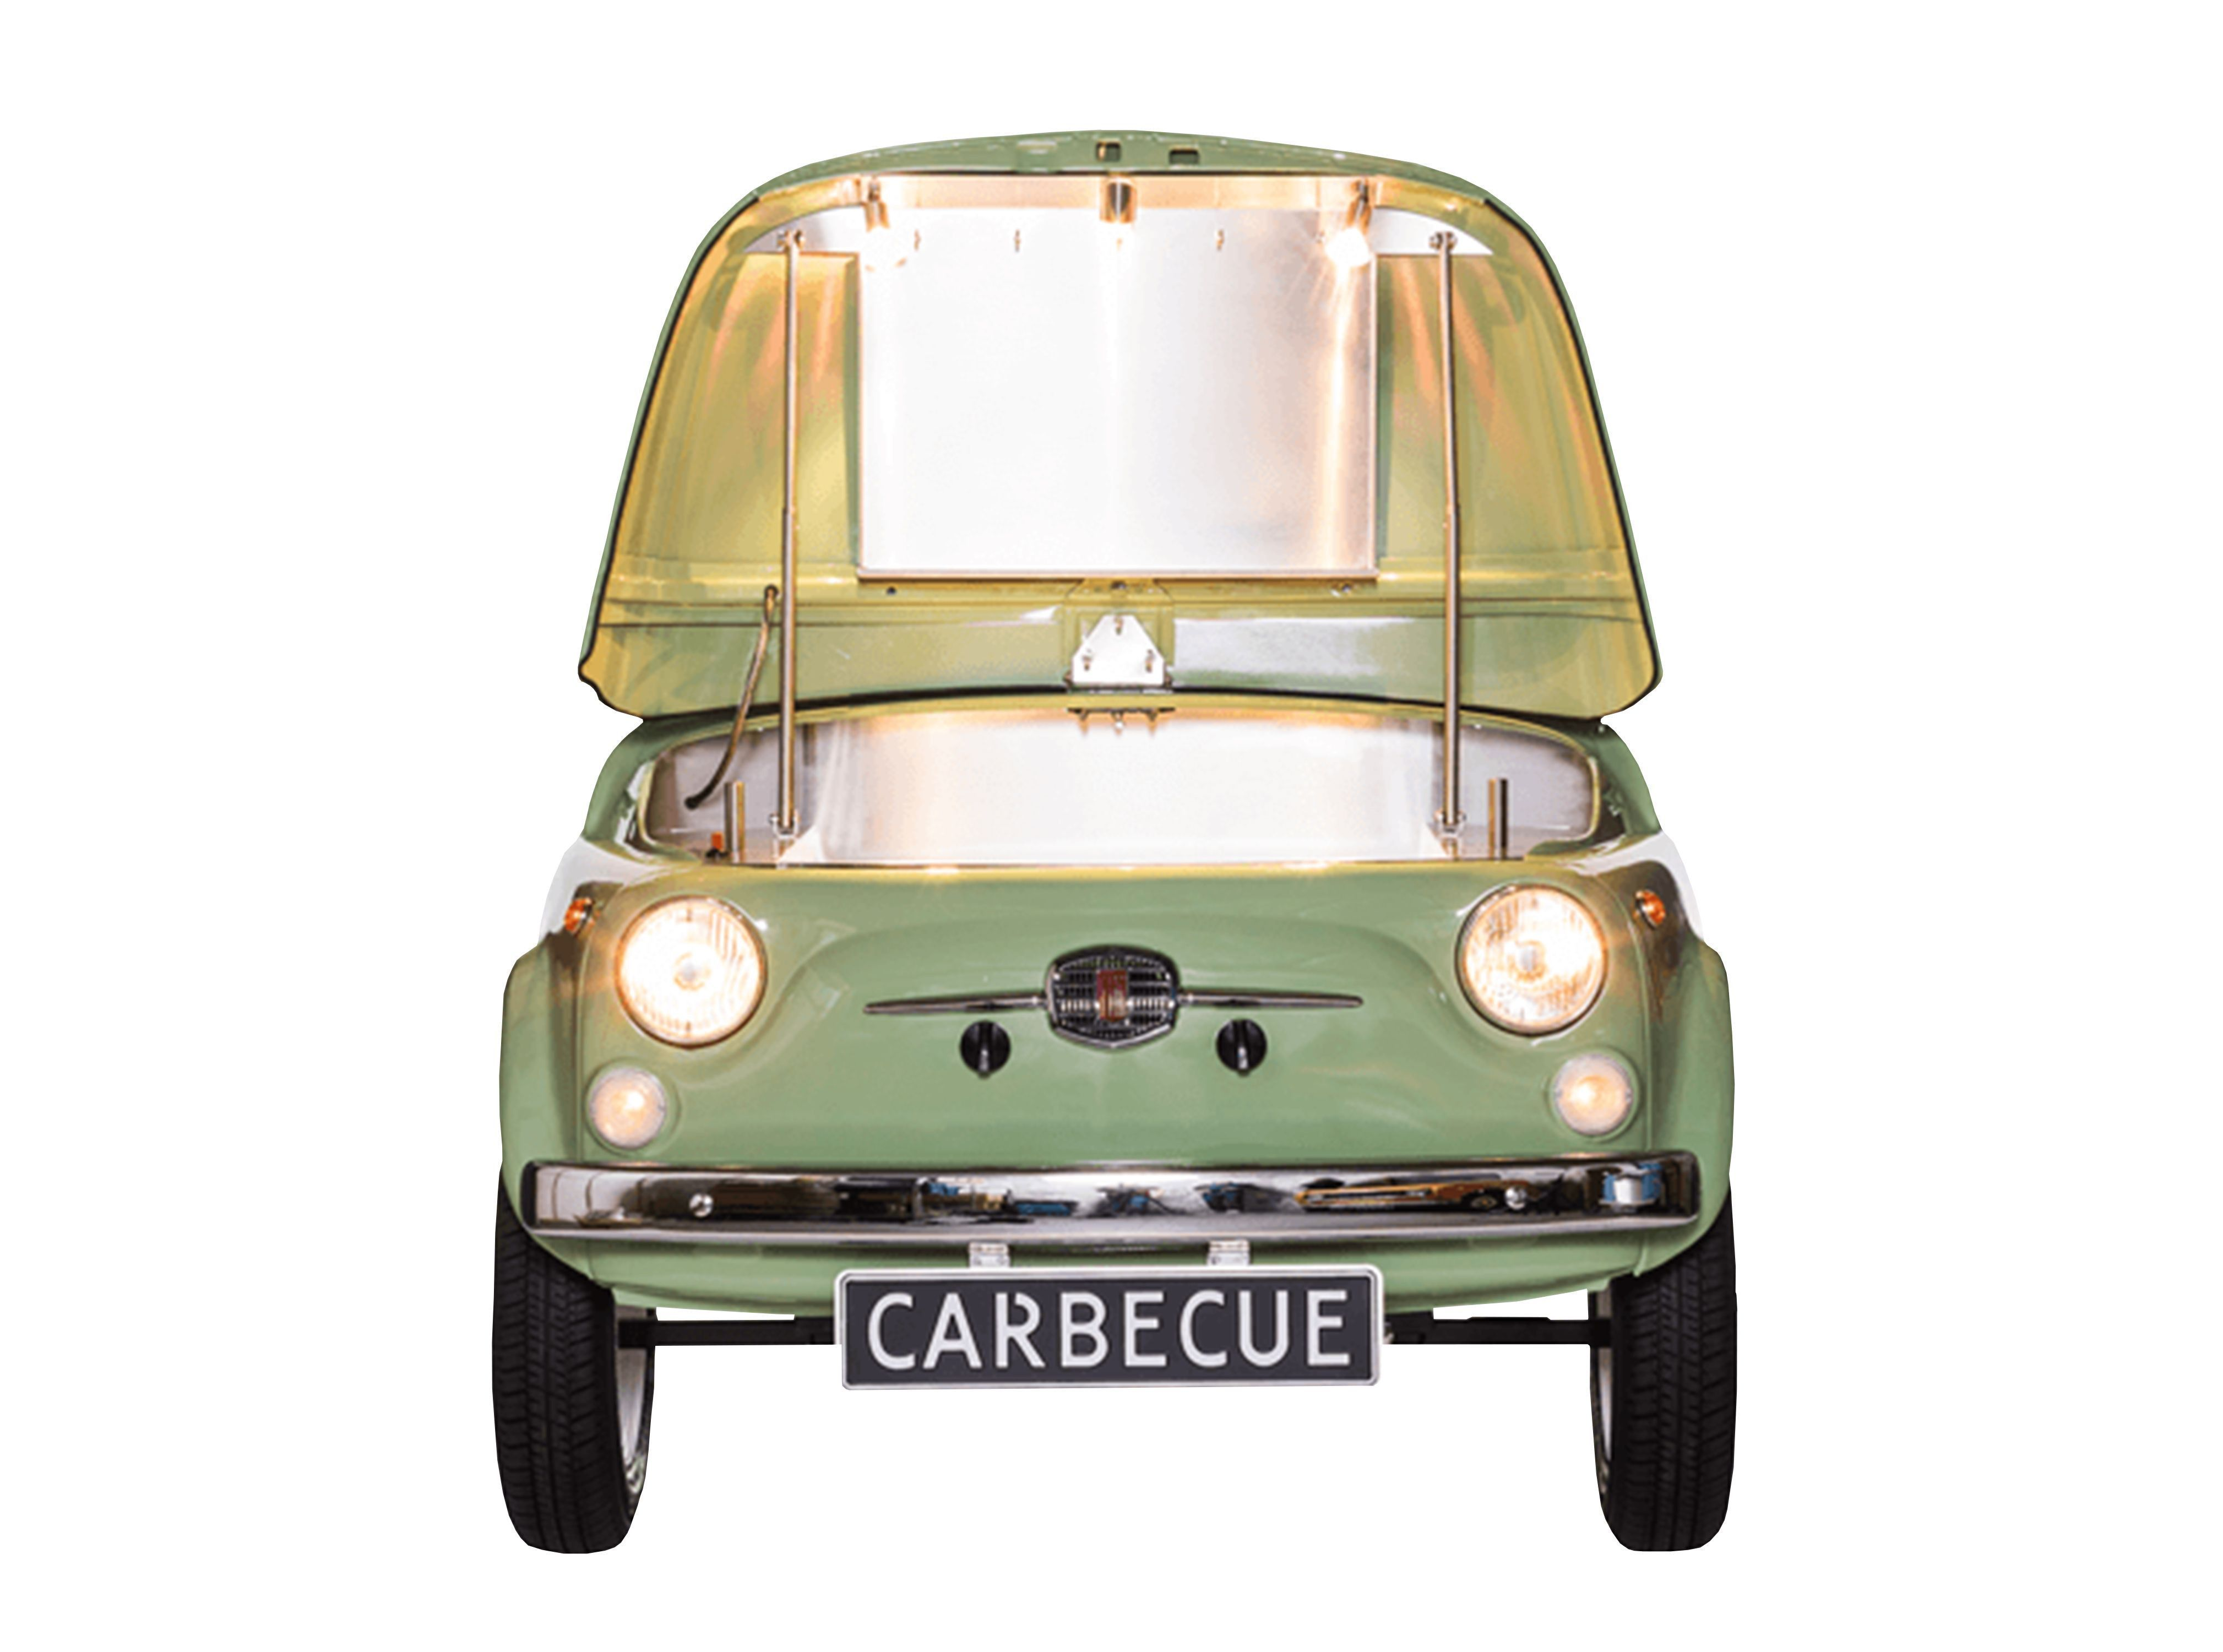 Carbecue | Fiat 500